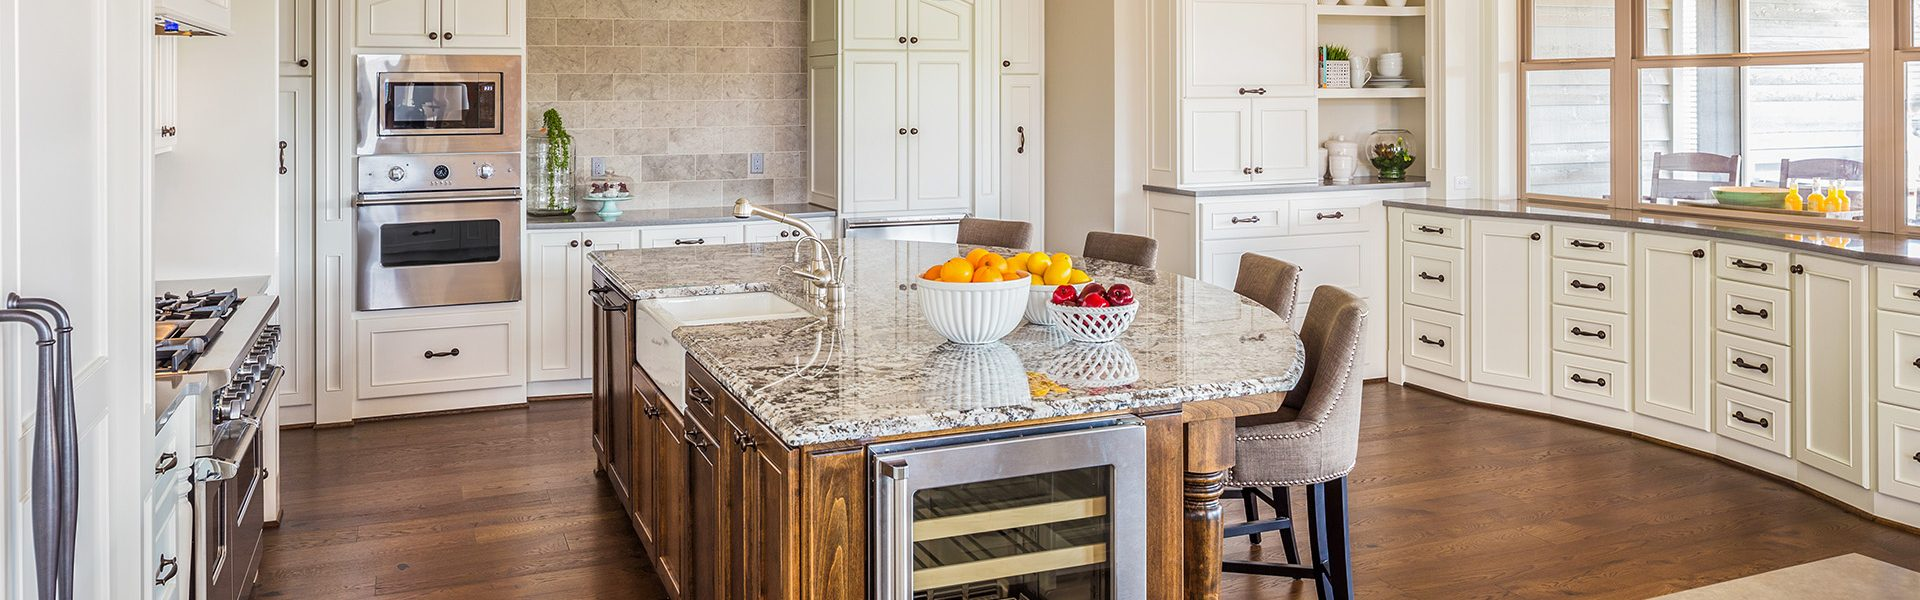 Our Countertop Installation Work